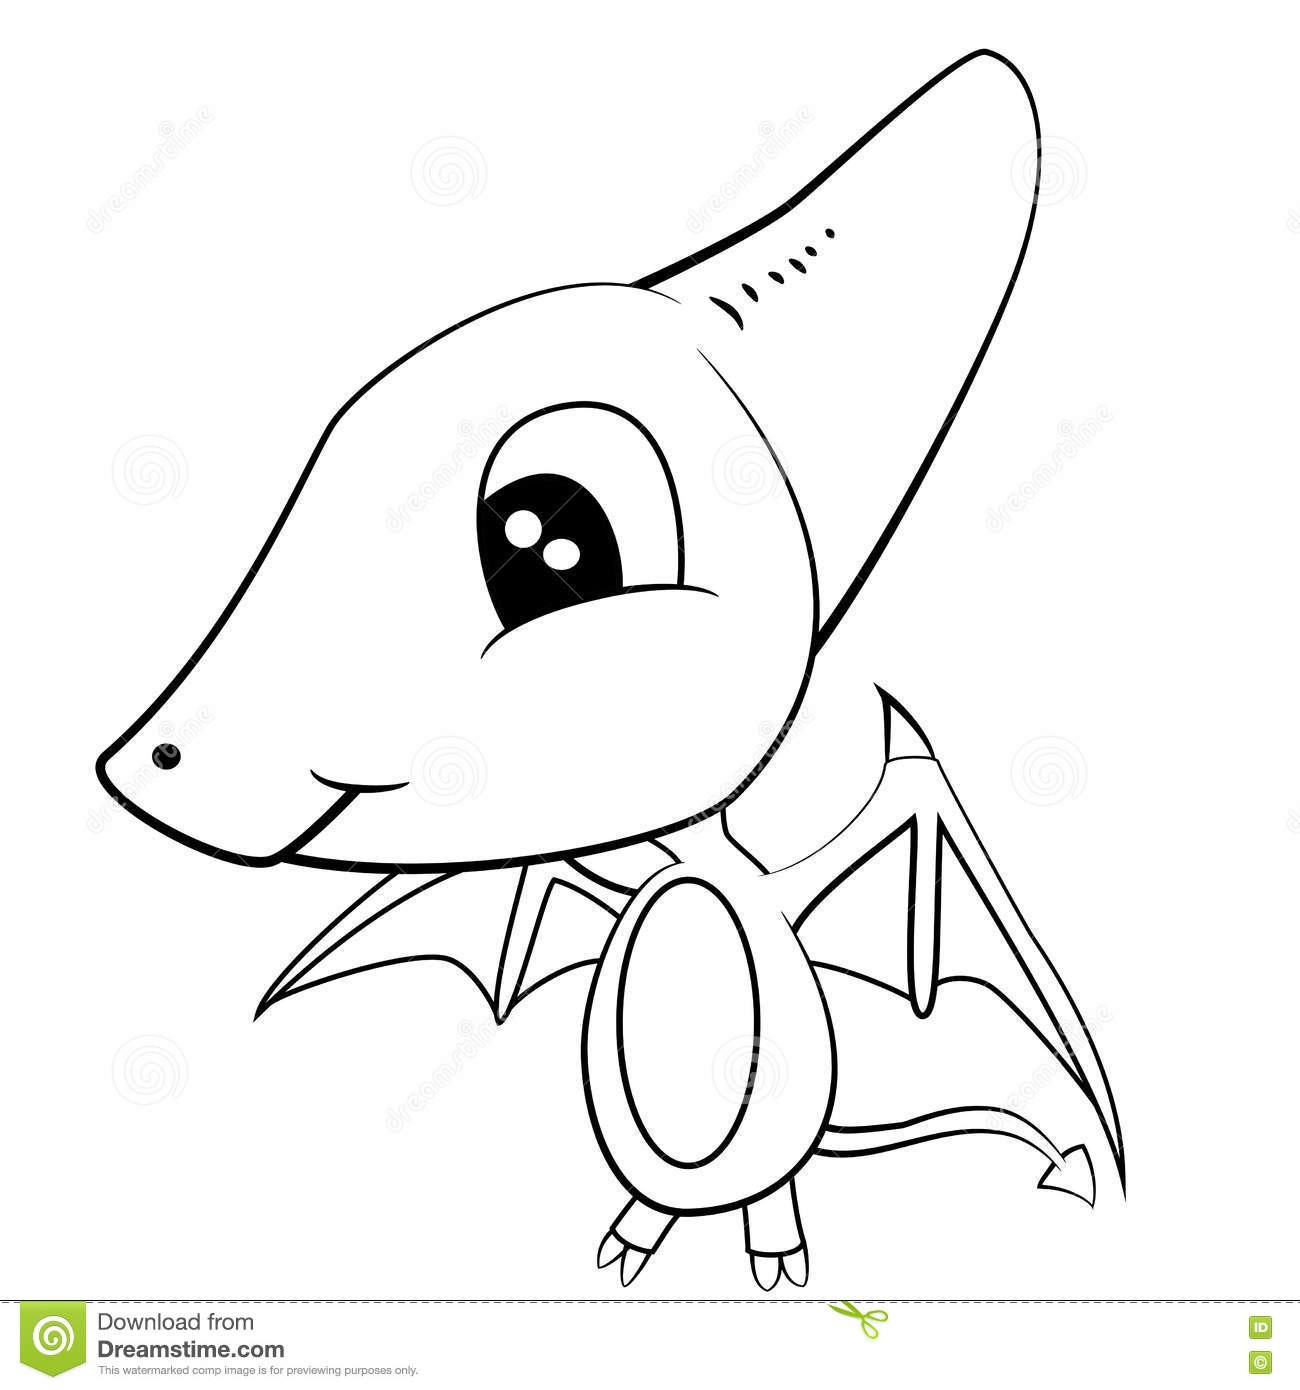 Cute Black And White Cartoon Of Baby Pterodactyl Dinosaur